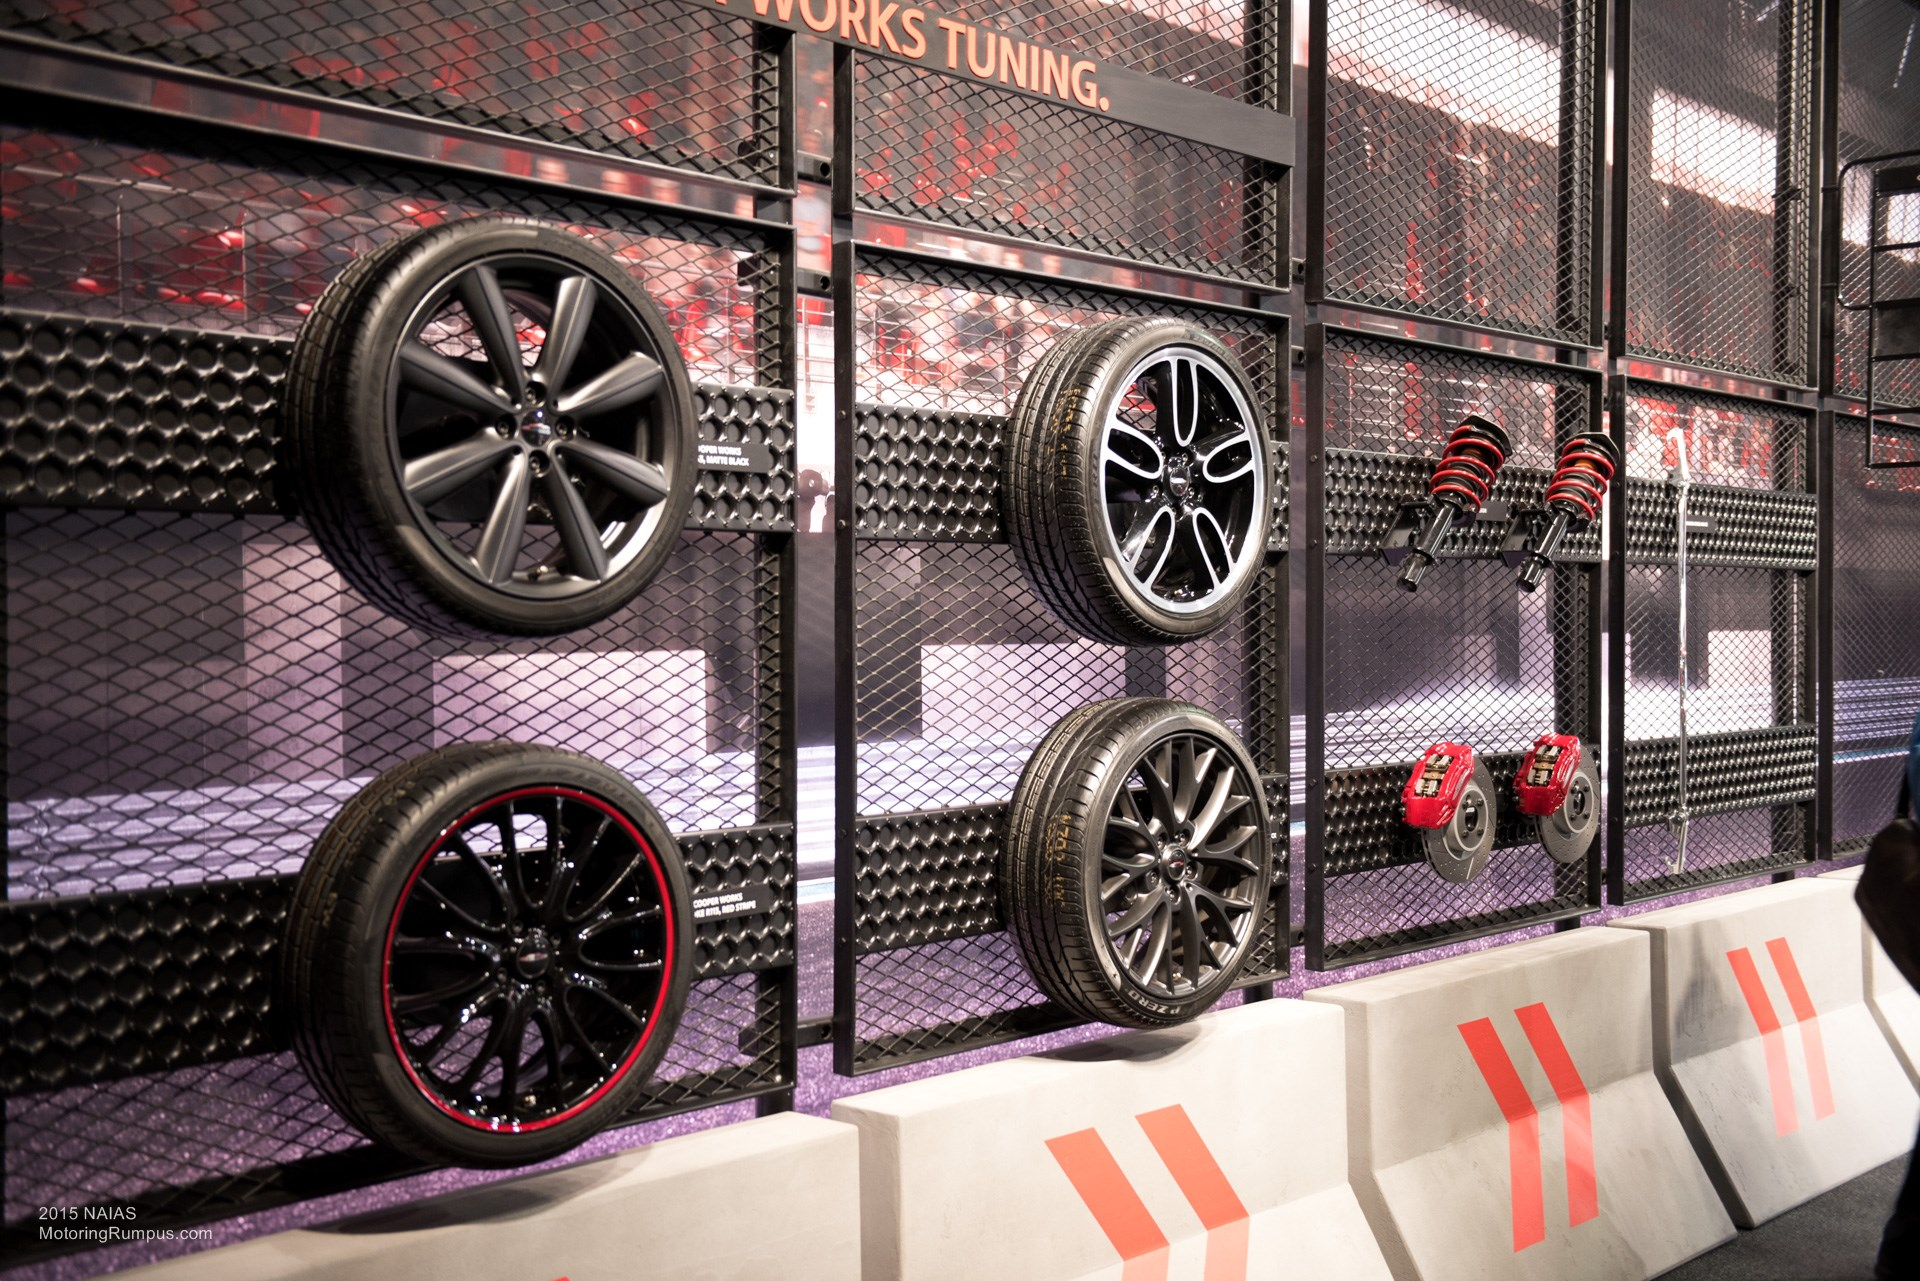 2015 NAIAS Mini John Cooper Works Tuning